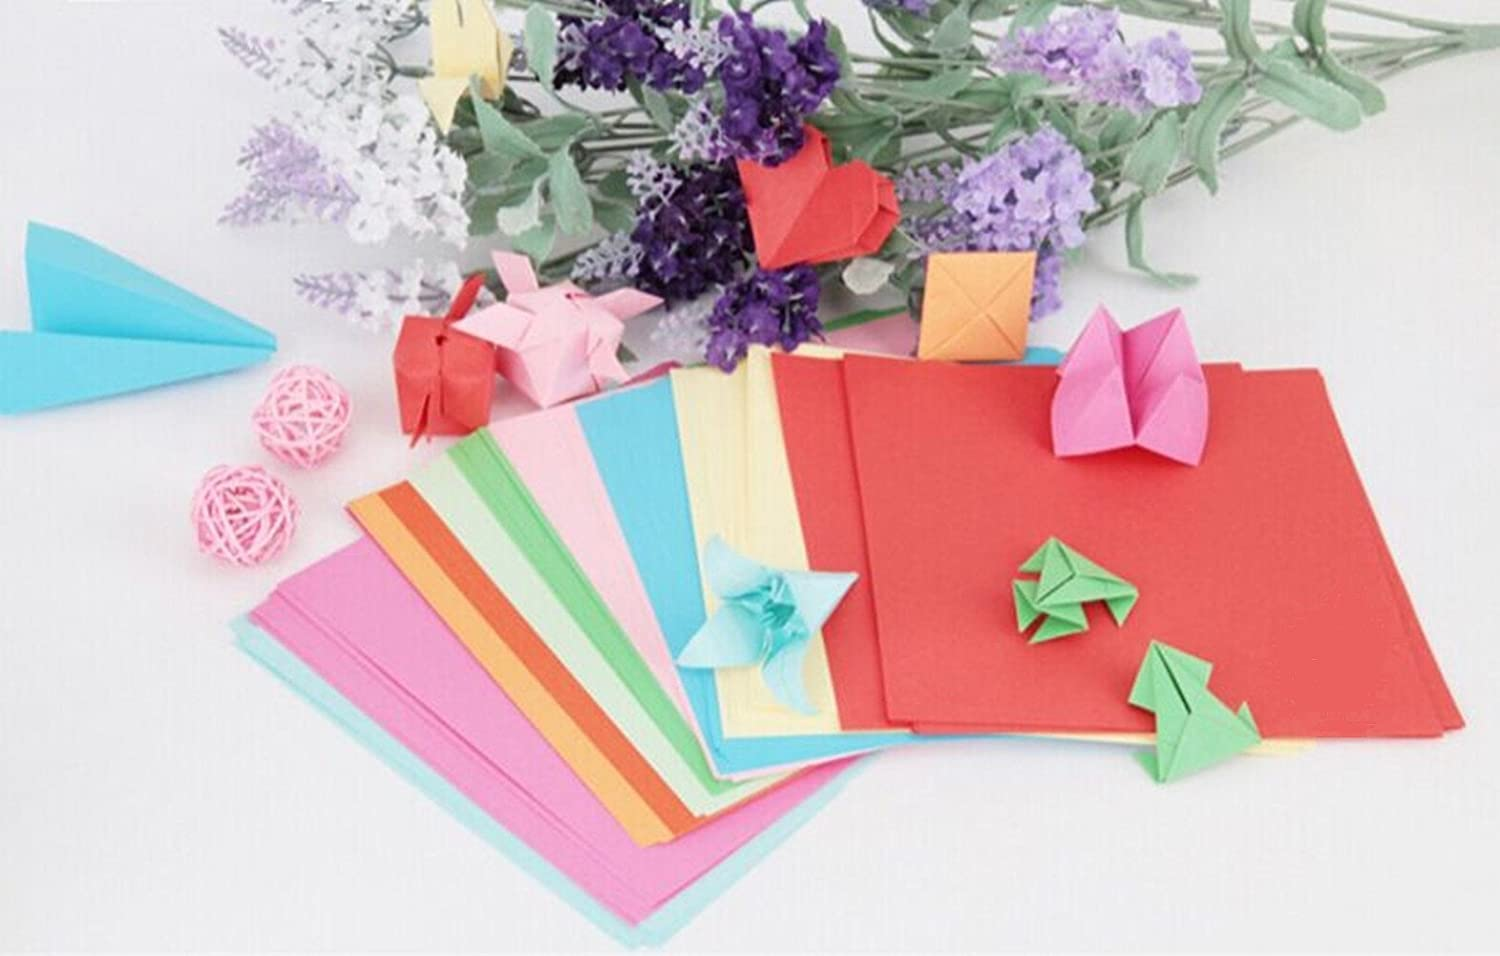 100 sheets well packed double sided origami paper 15cm x 15cm 6 100 sheets well packed double sided origami paper 15cm x 15cm 6 inch in 10 assorted colours amazon kitchen home jeuxipadfo Images